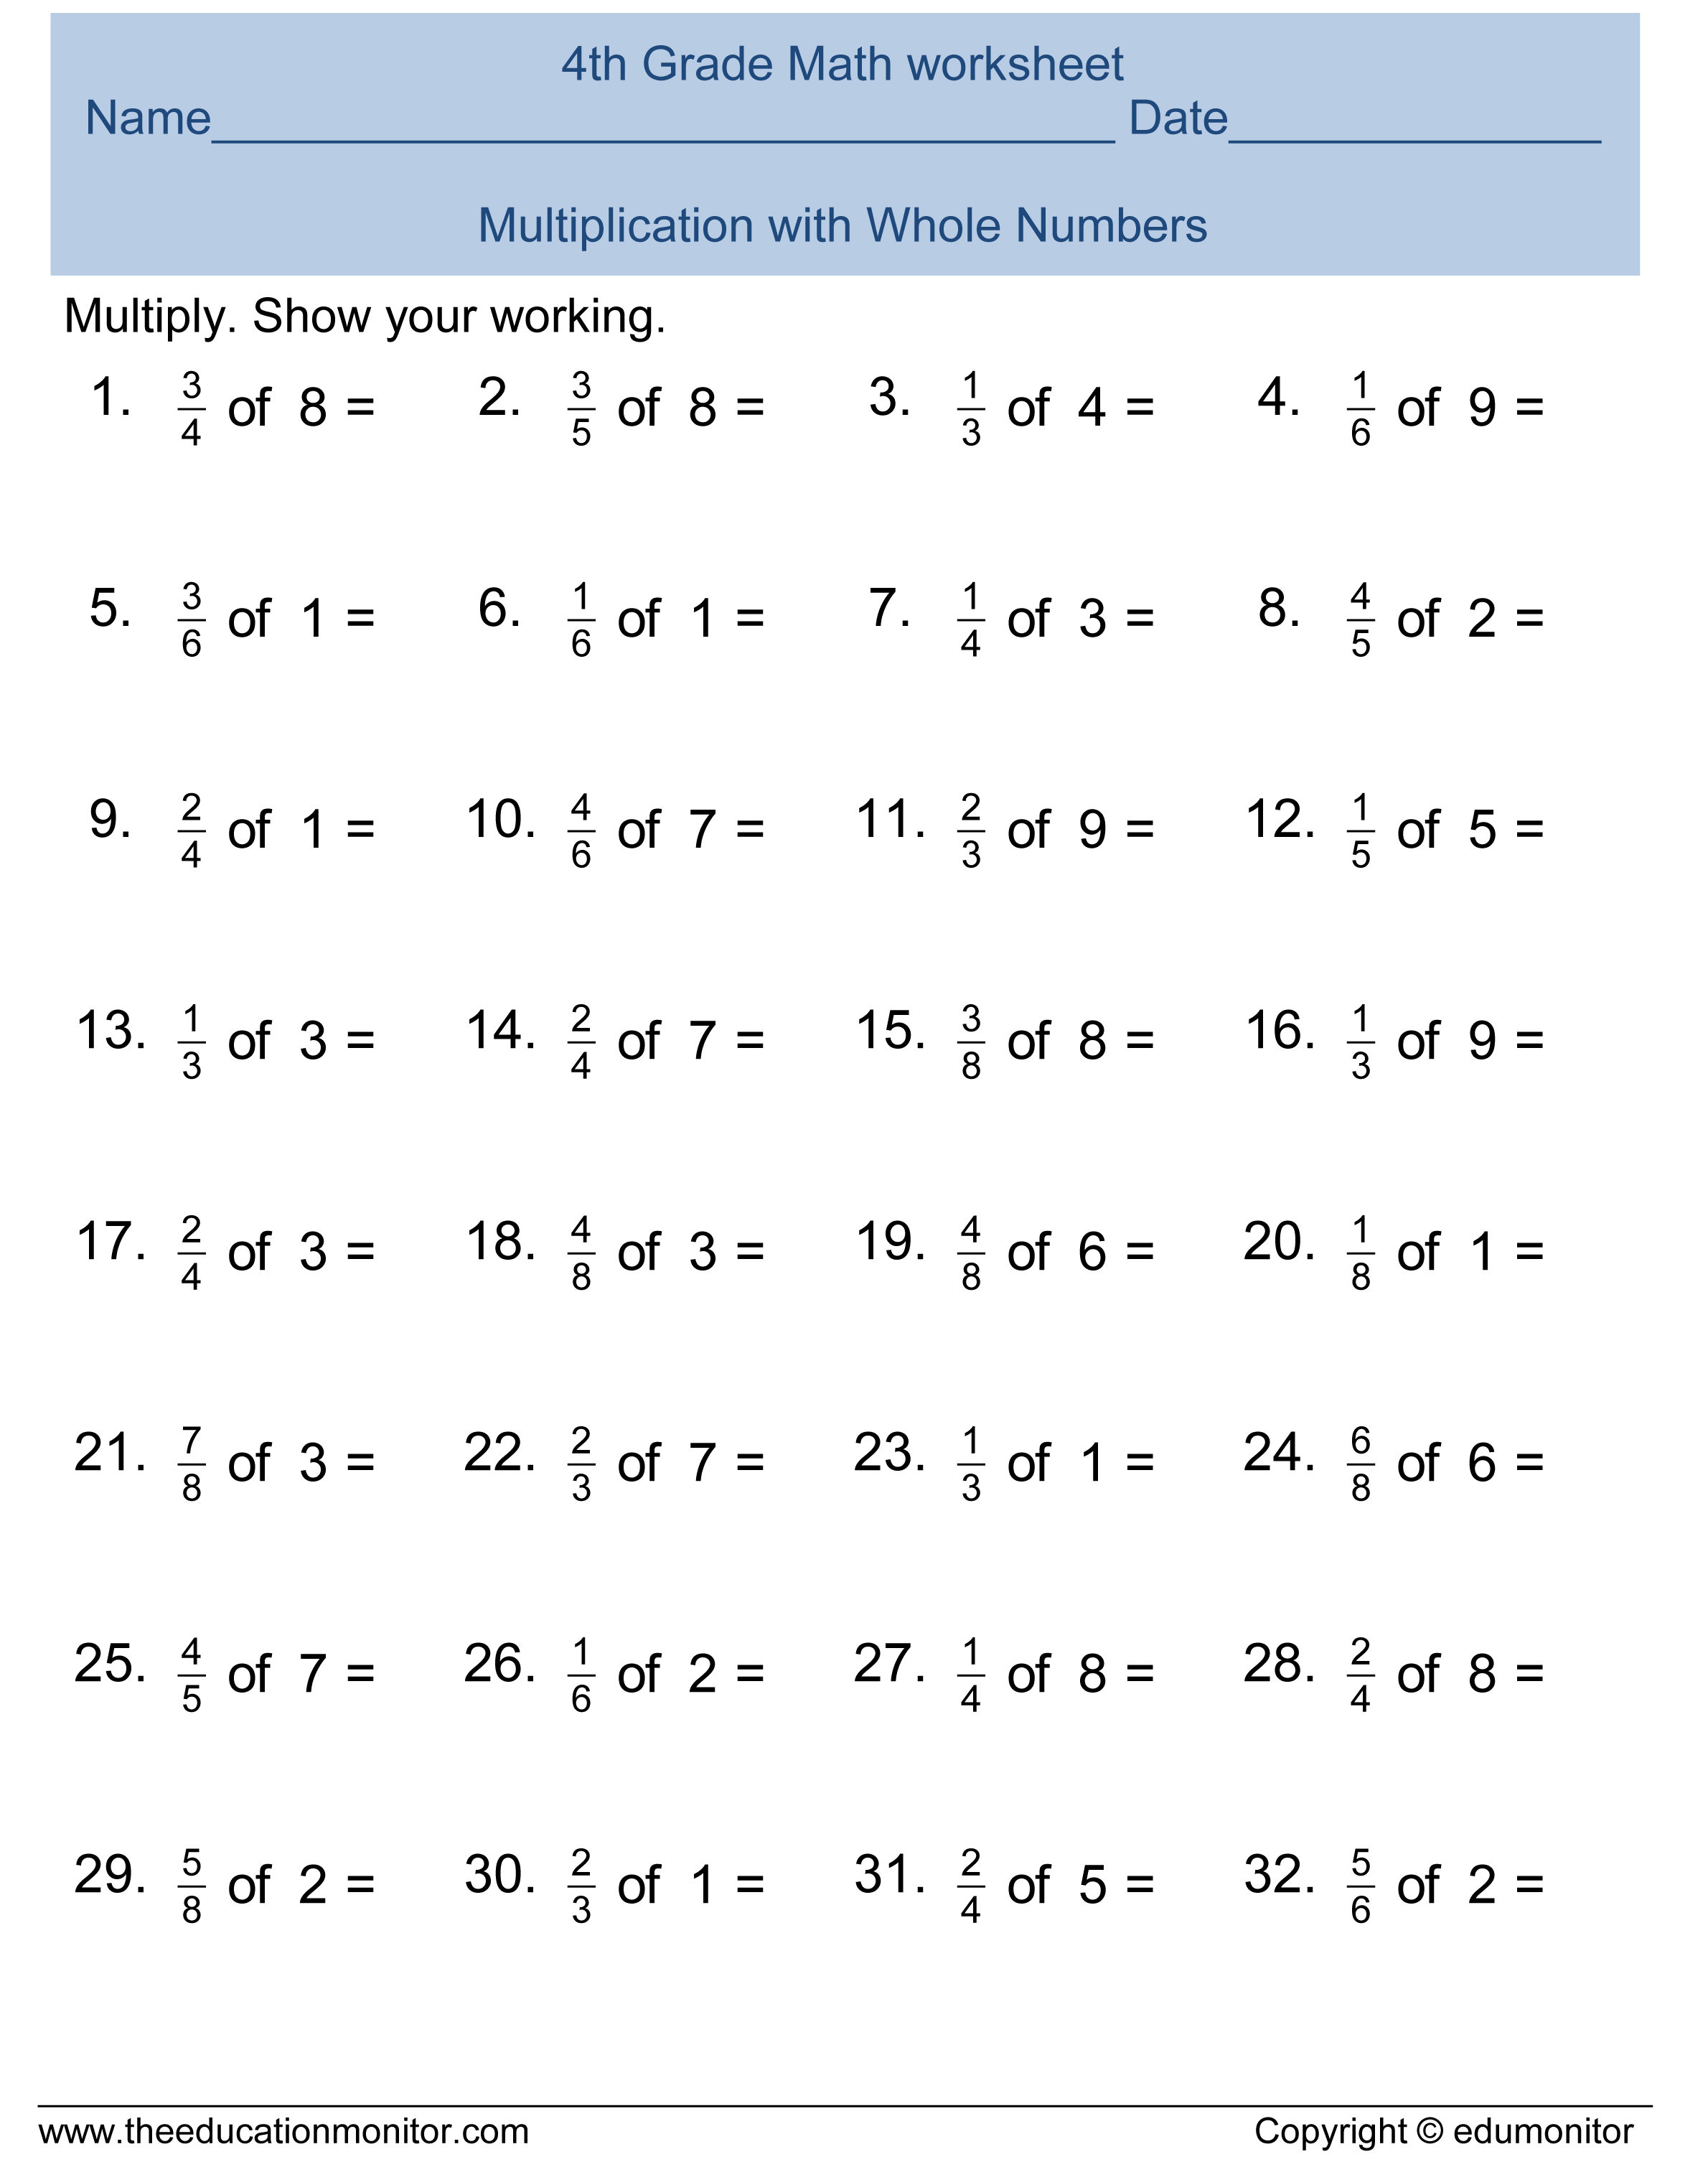 Printables Math Worksheet 4th Grade math worksheets 4th grade subtraction 4 free printable k5 learning